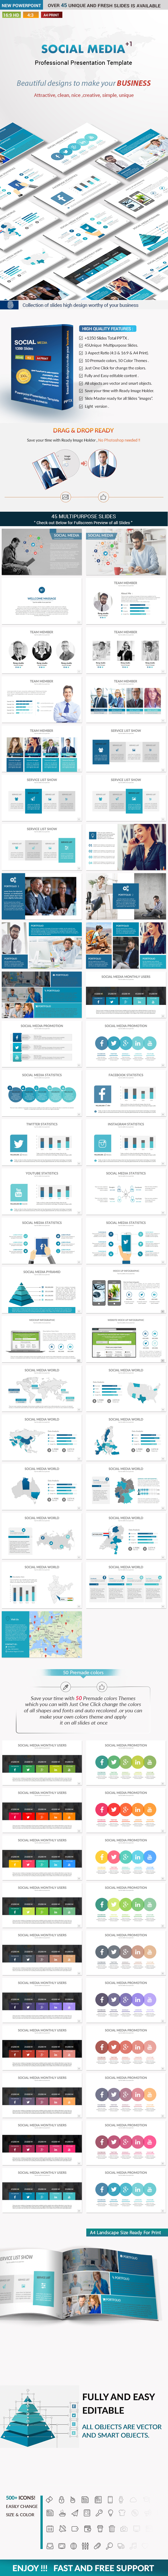 Social media Business PowerPoint Presentation Template - Business PowerPoint Templates